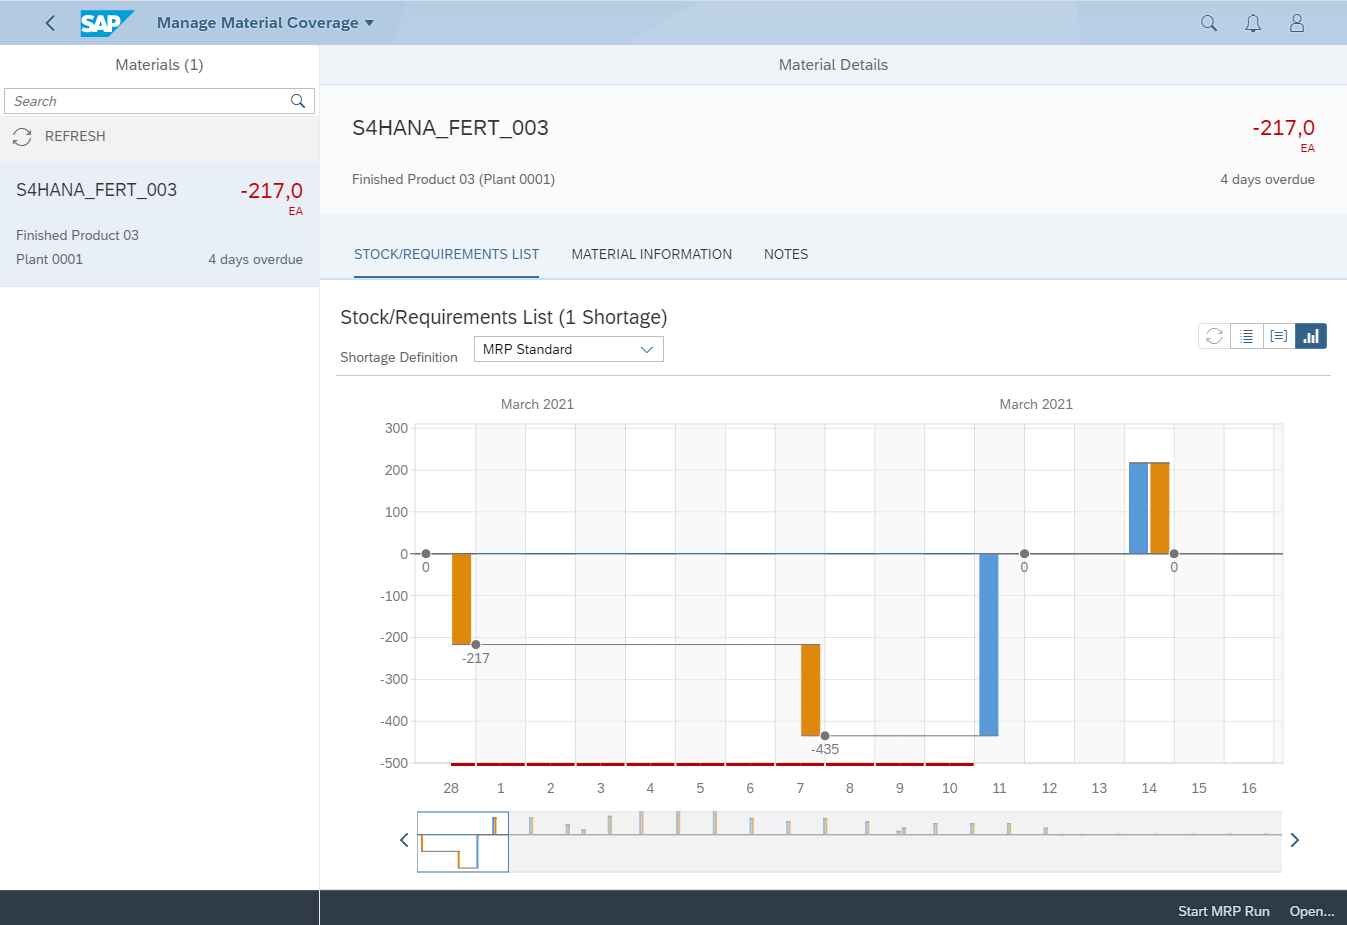 Monitor%20Material%20Coverage%20chart%20available%20in%20S/4HANA